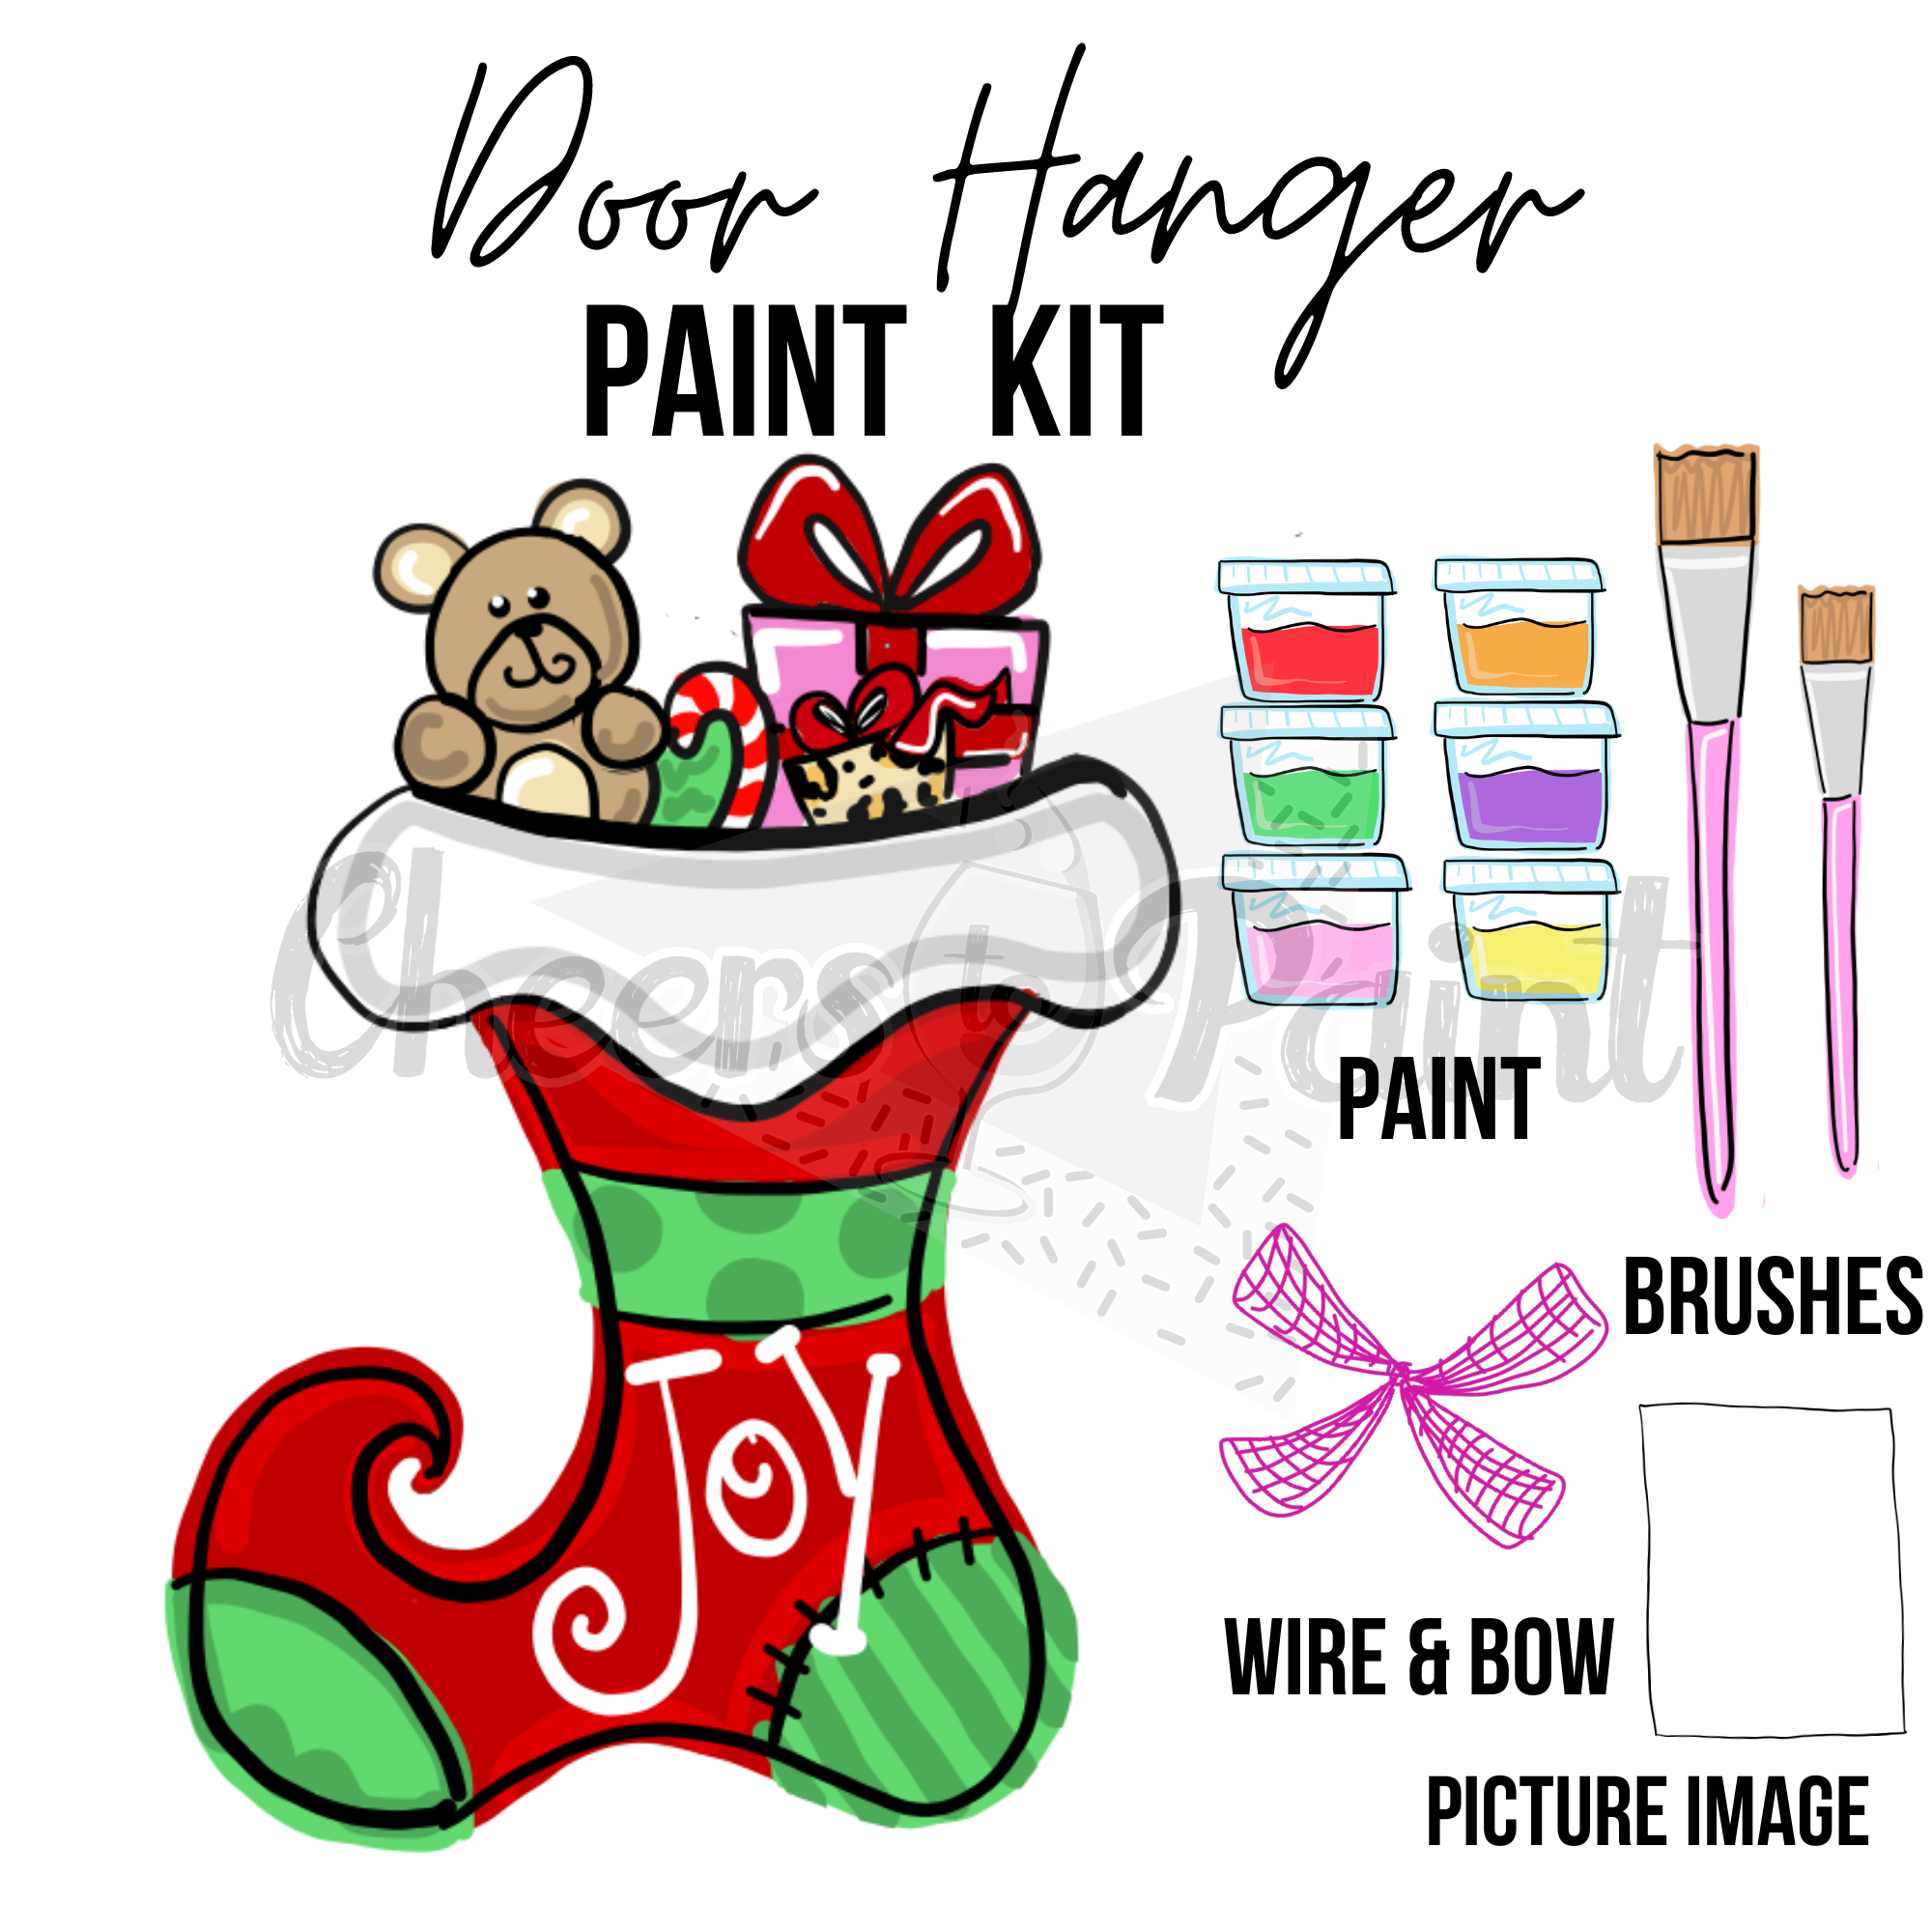 Present Stocking- DIY Door Hanger Paint Kit